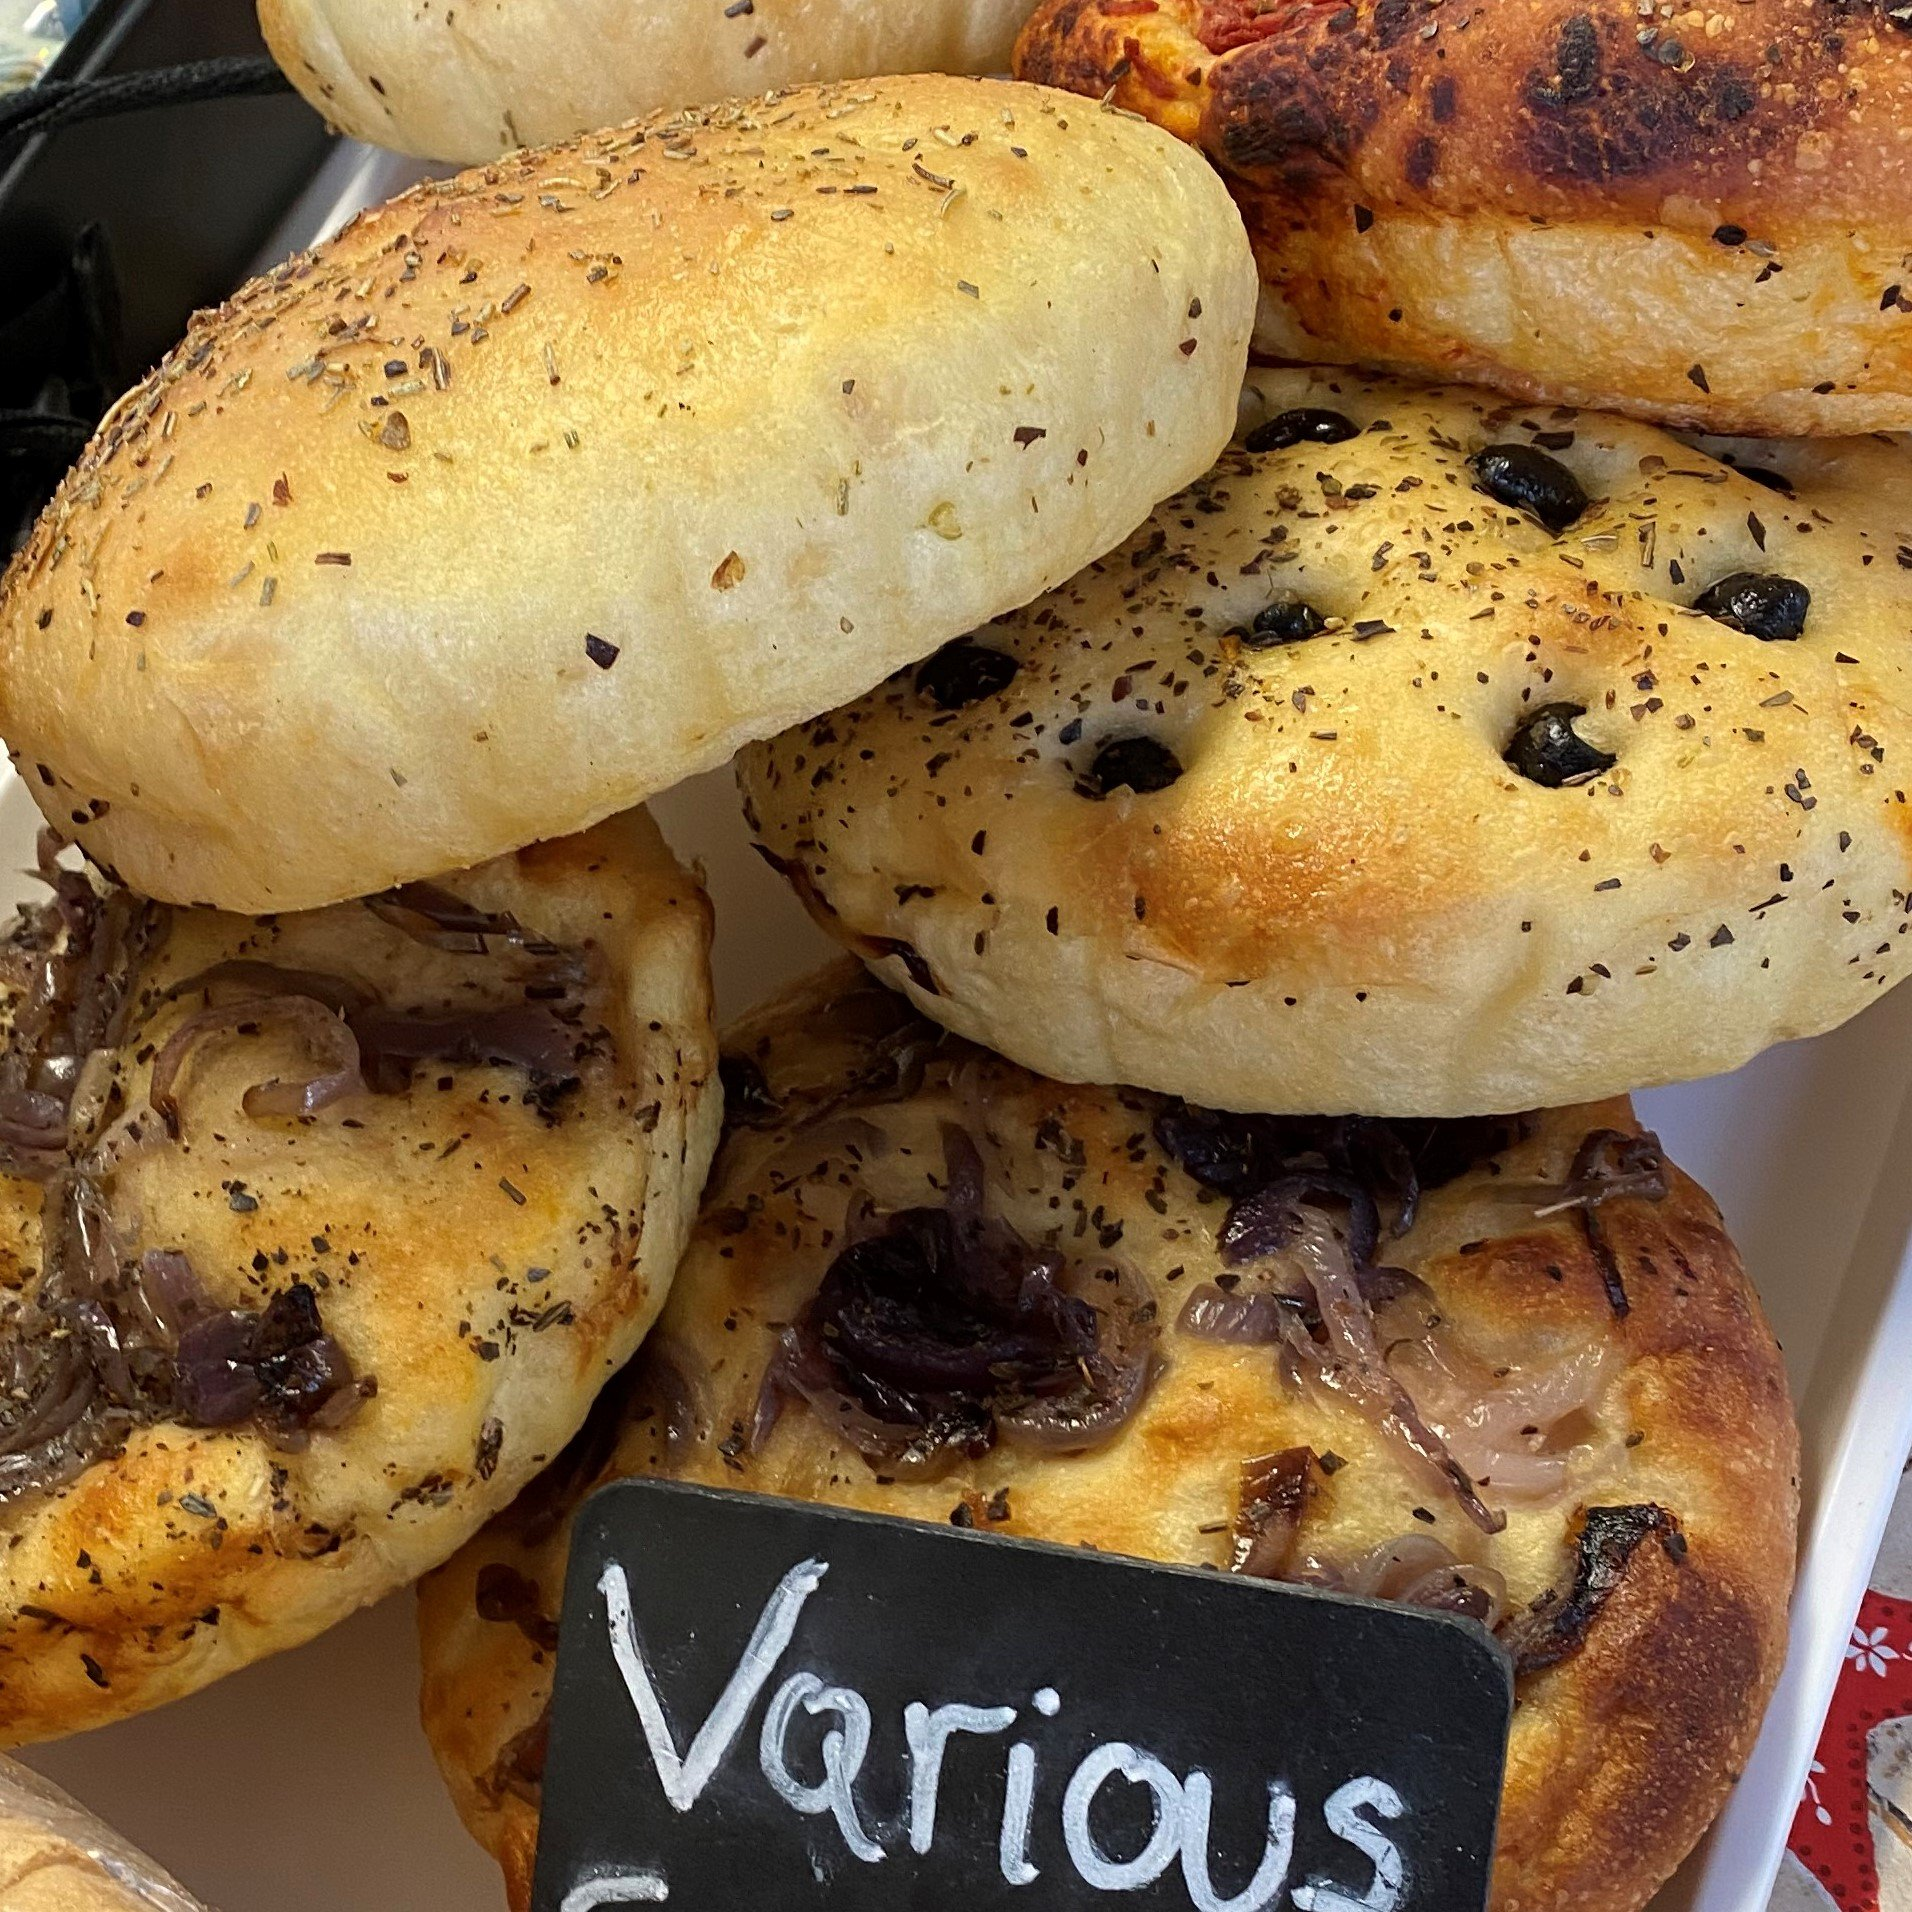 Focaccia (caramelised red onion, olive, dried tomato or mixed) - £2.30